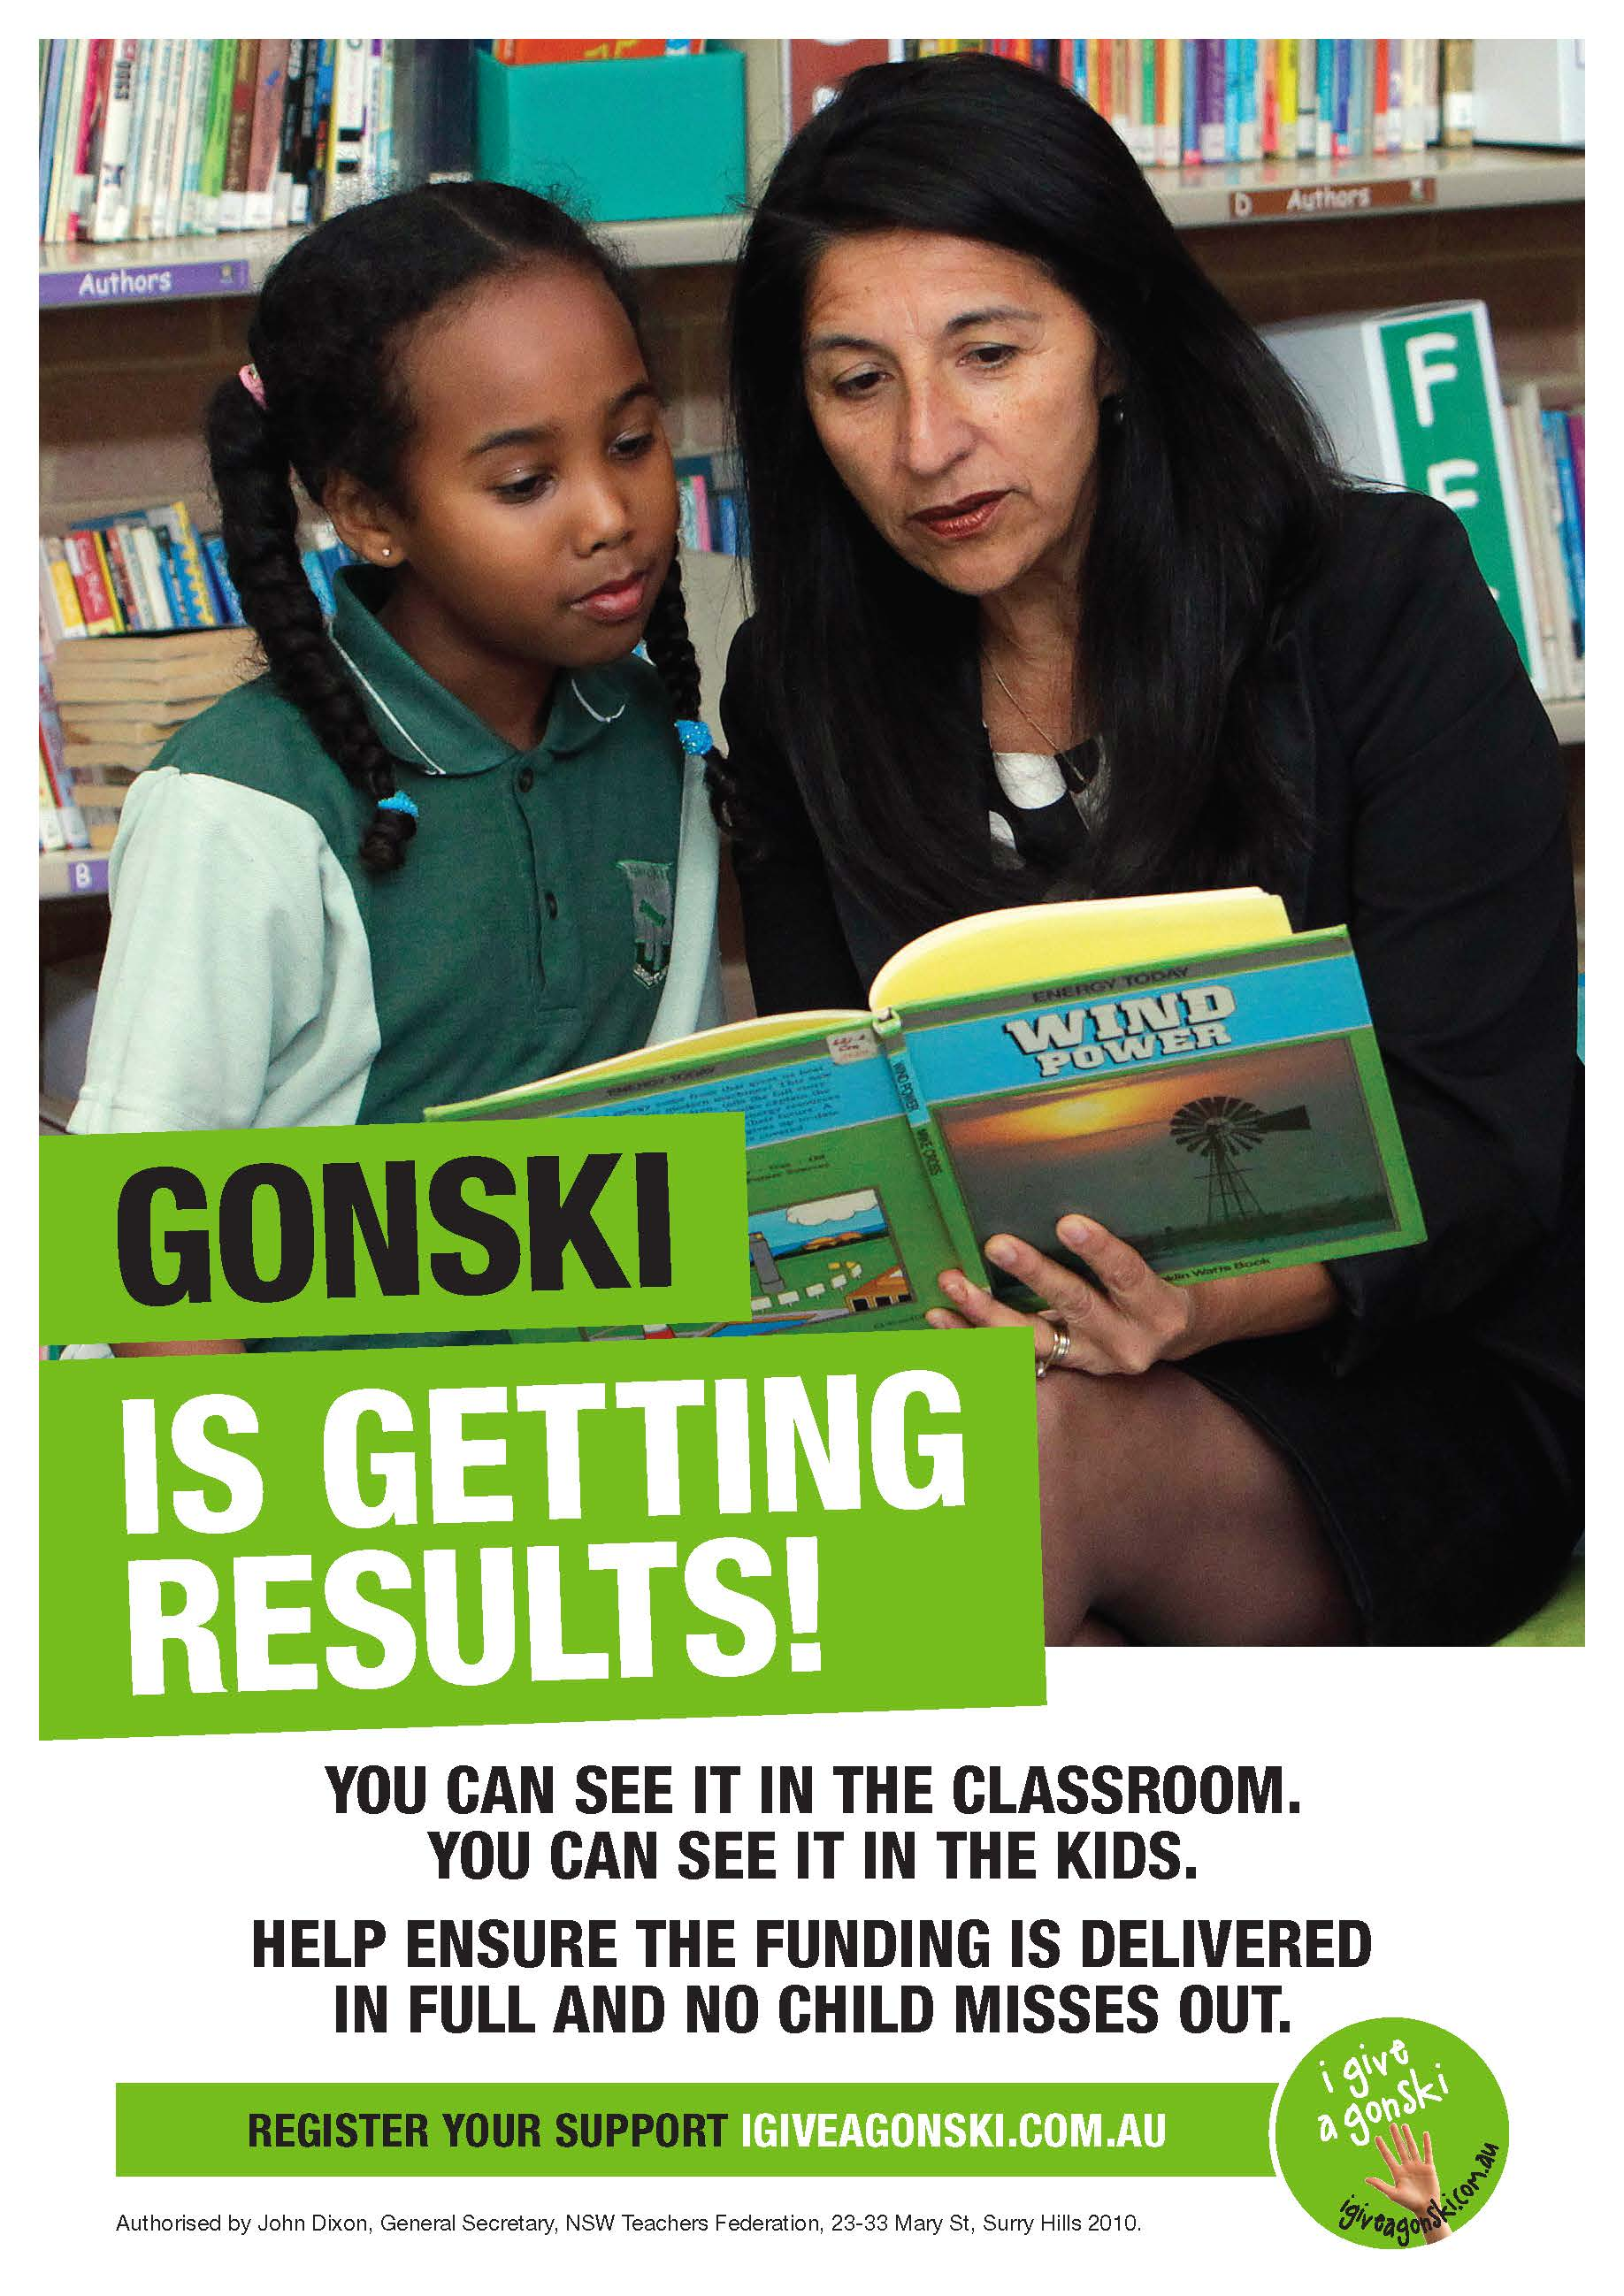 Gonski is getting results poster